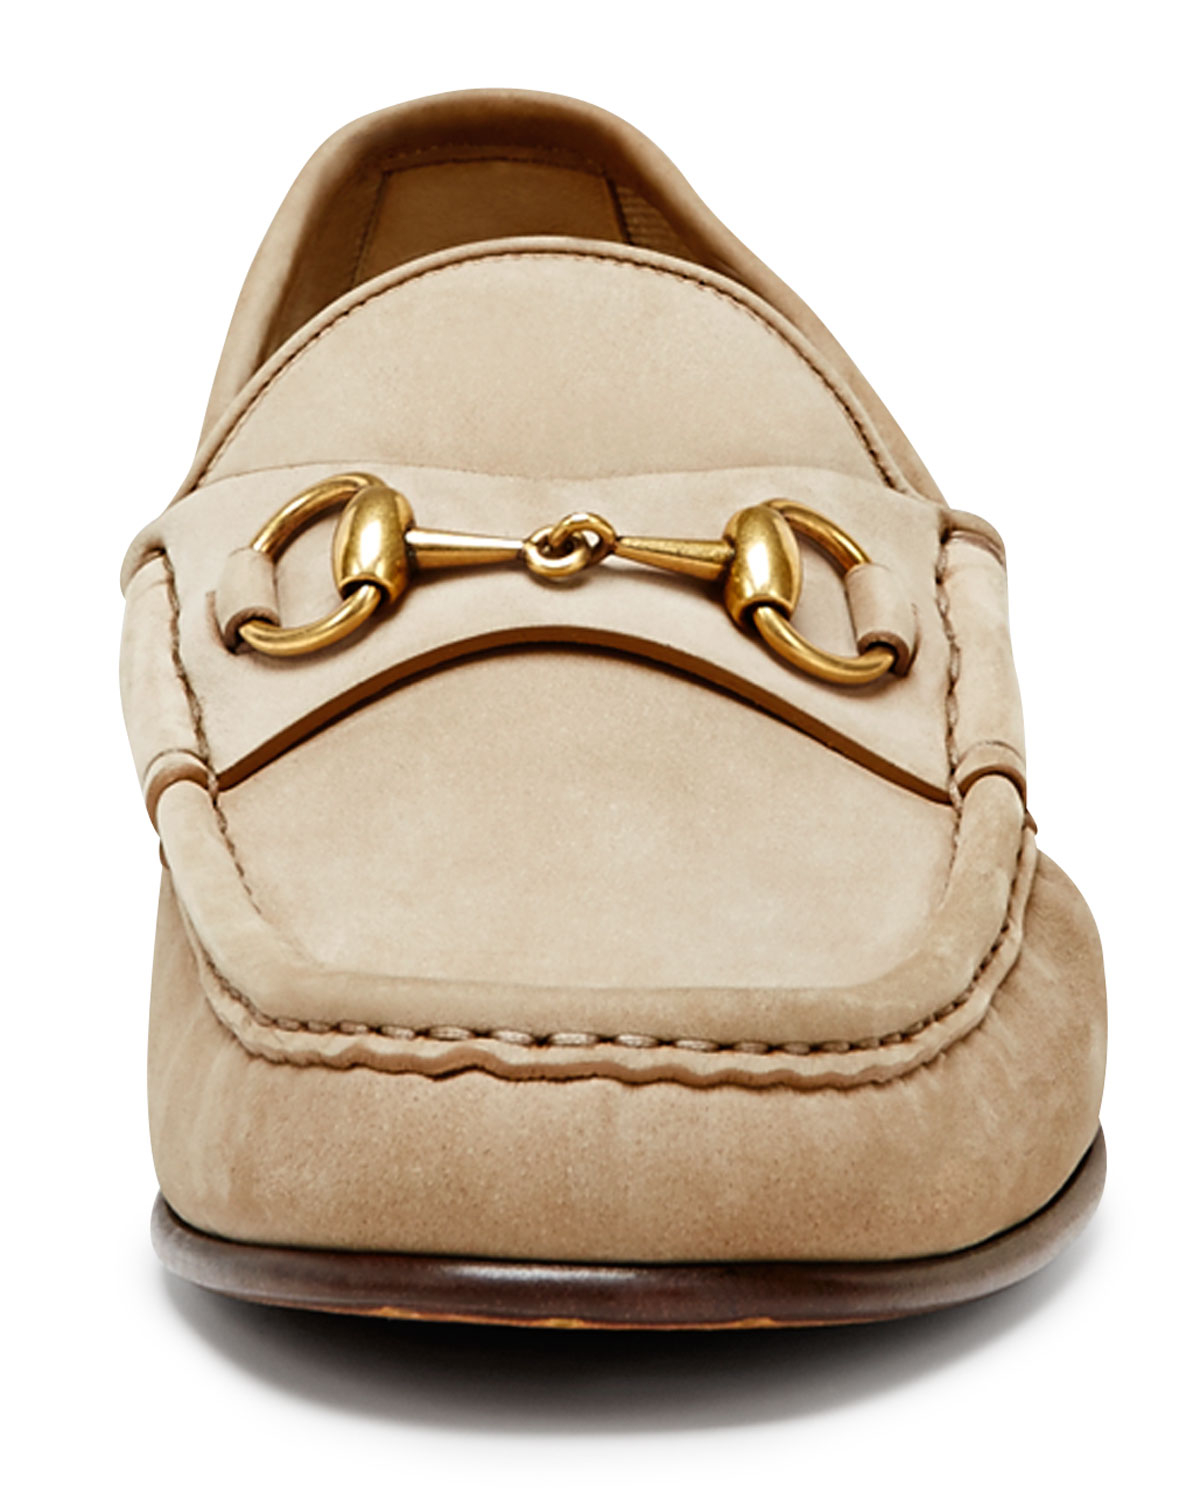 9f14d1ca31a Lyst - Gucci Roos 1953 Suede Horsebit Loafer in Natural for Men